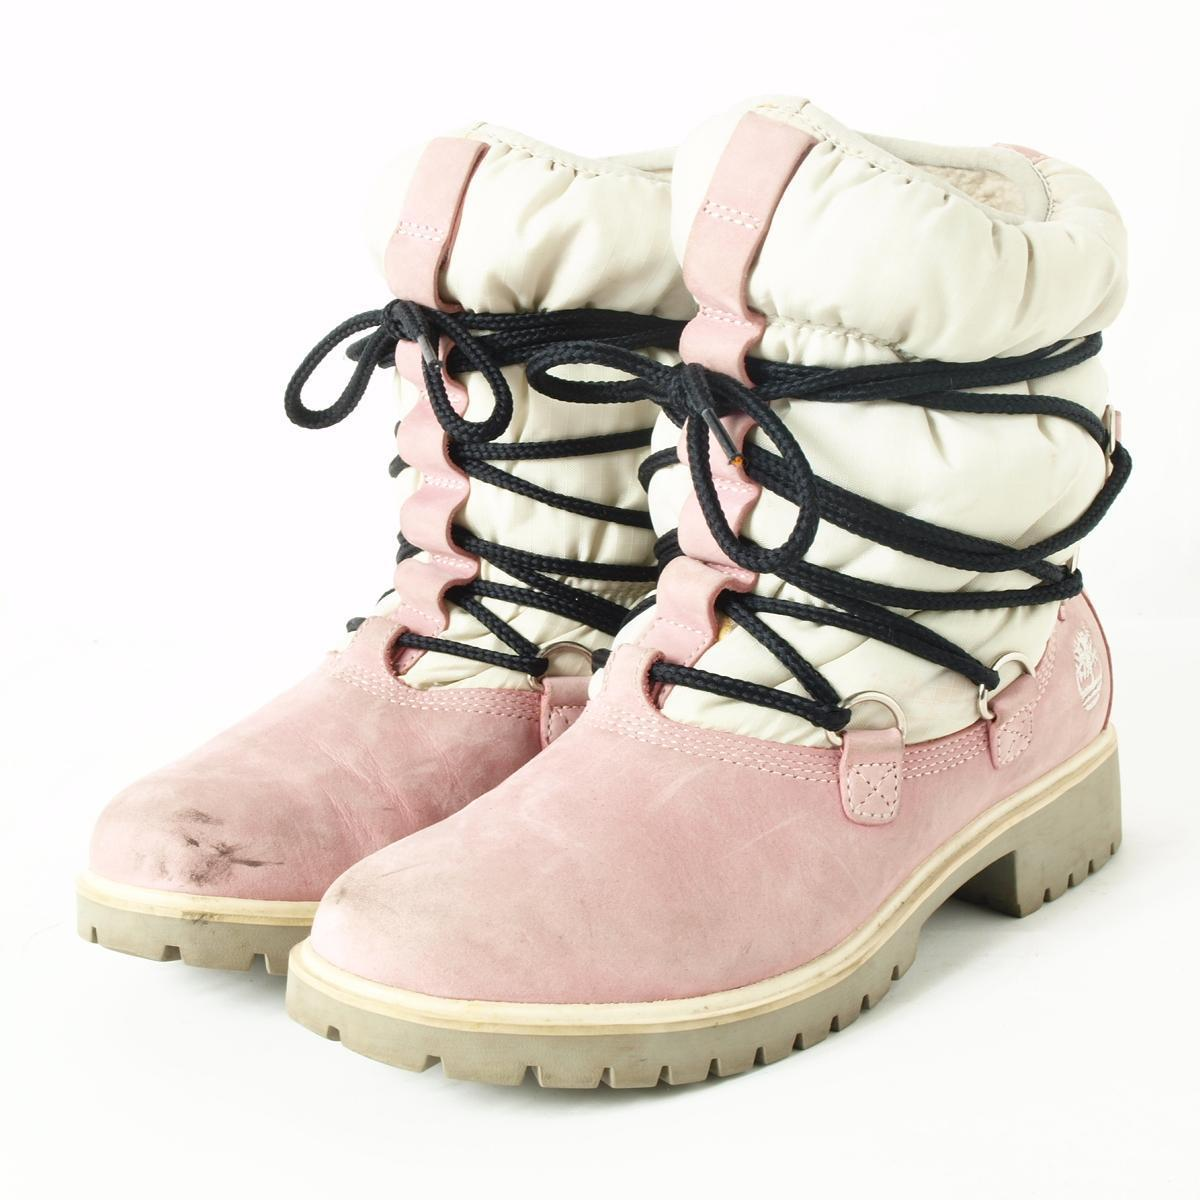 Timberland winter boots 7M Lady's 23.5cm Timberland boh8908 151119